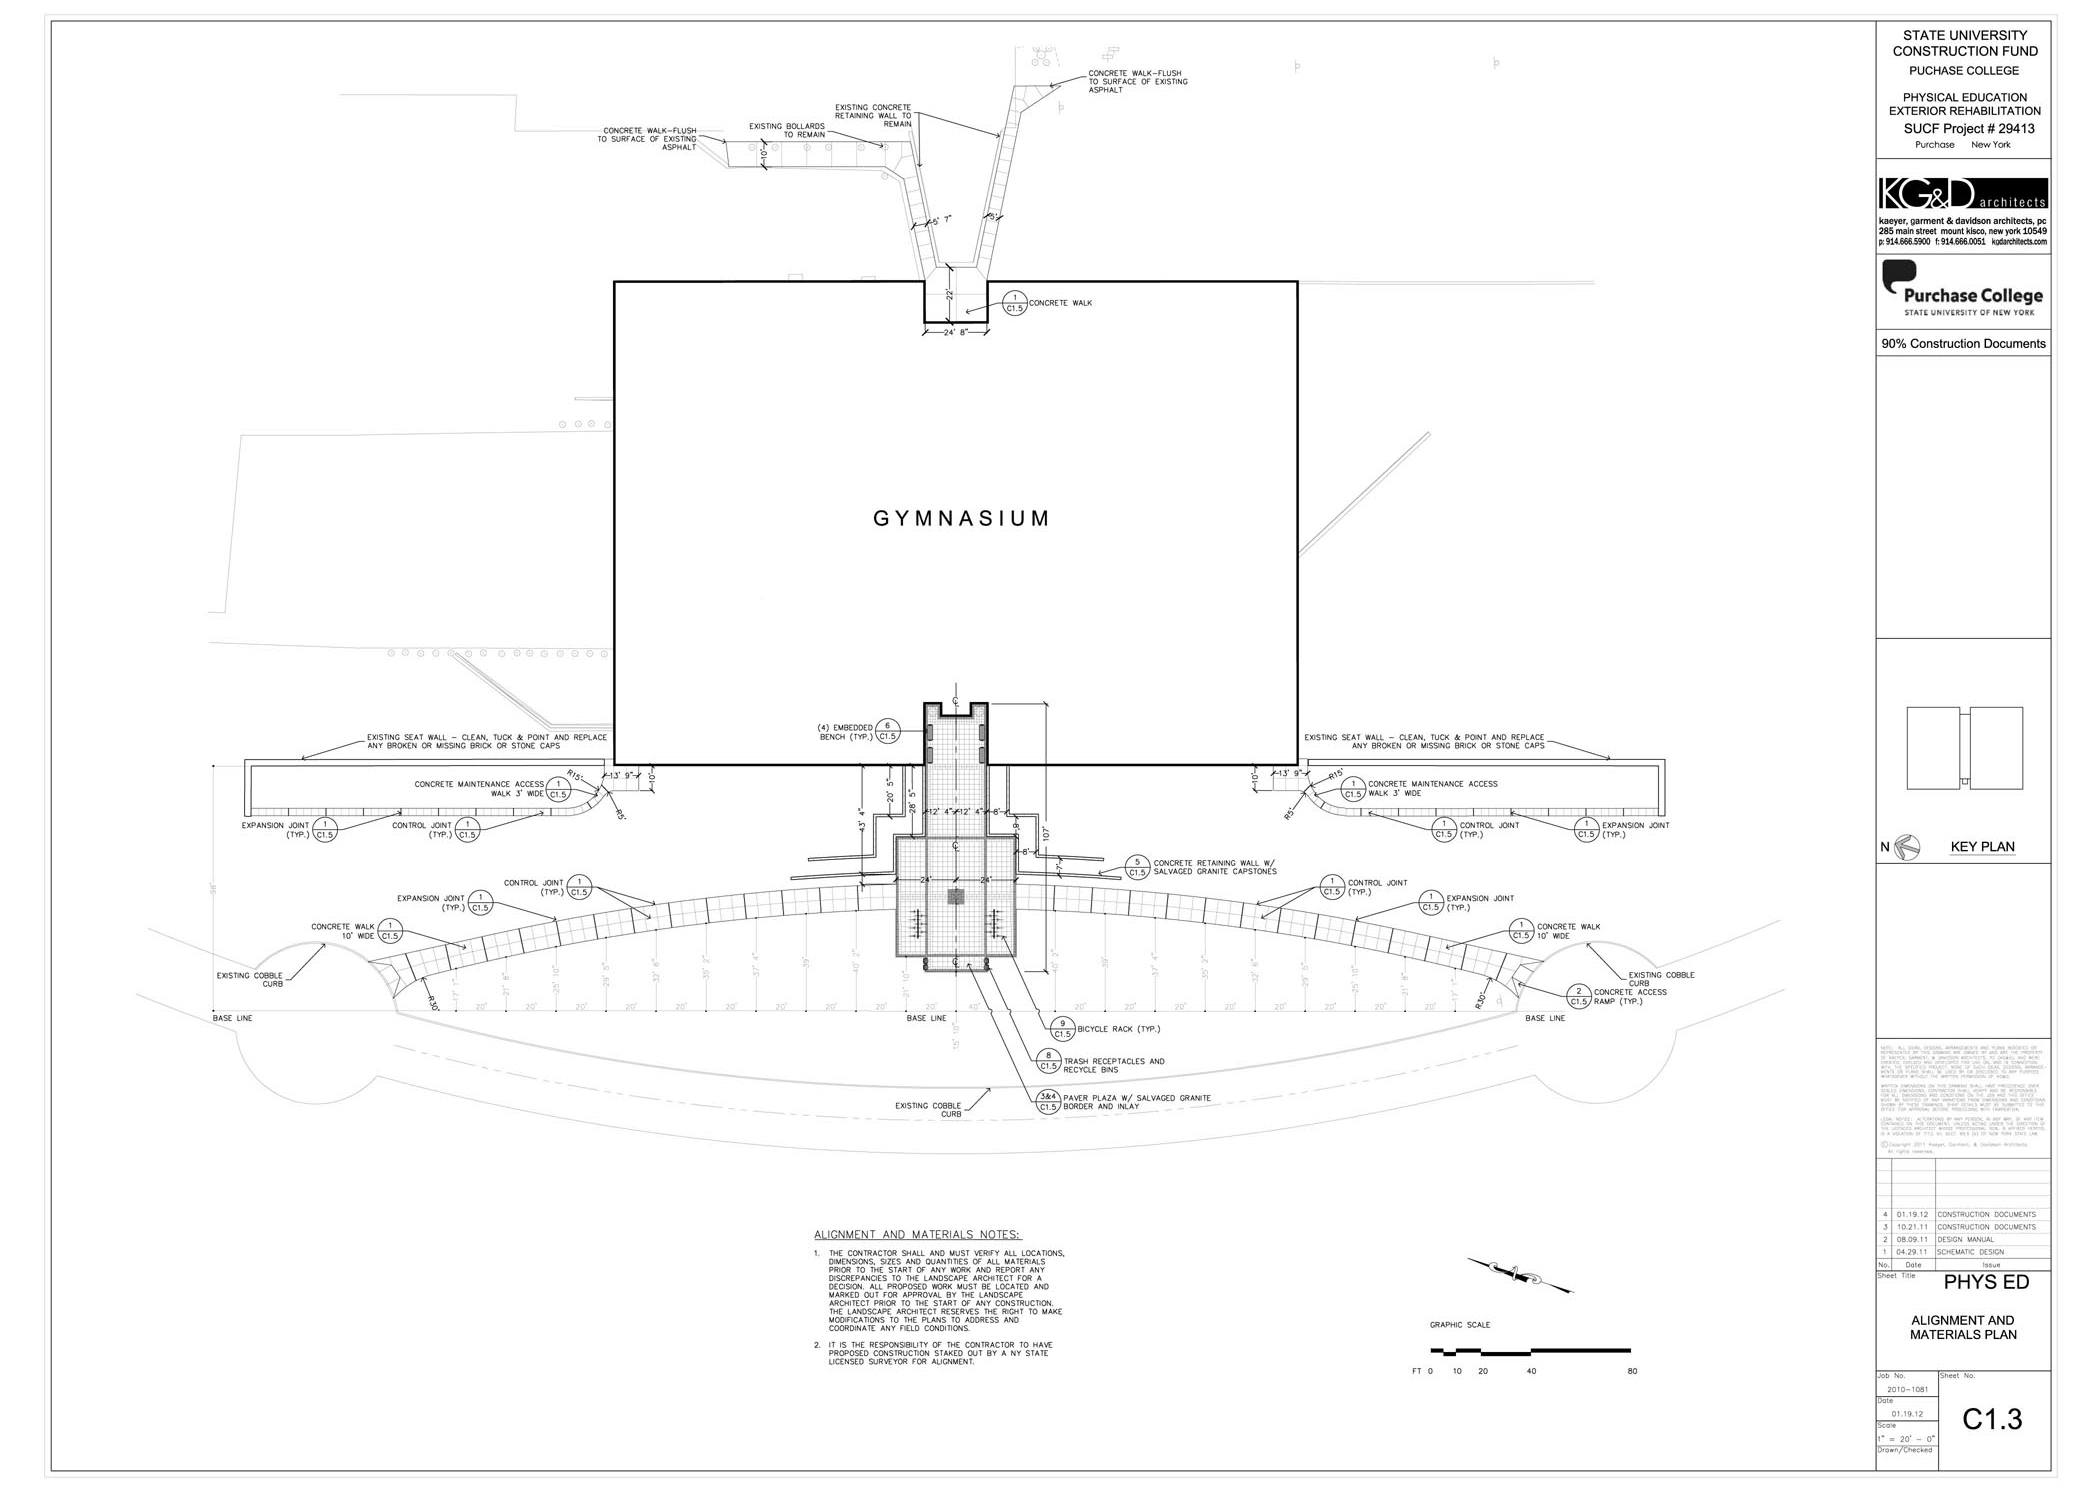 Construction Drawing - Alignment and Materials Plan (University)